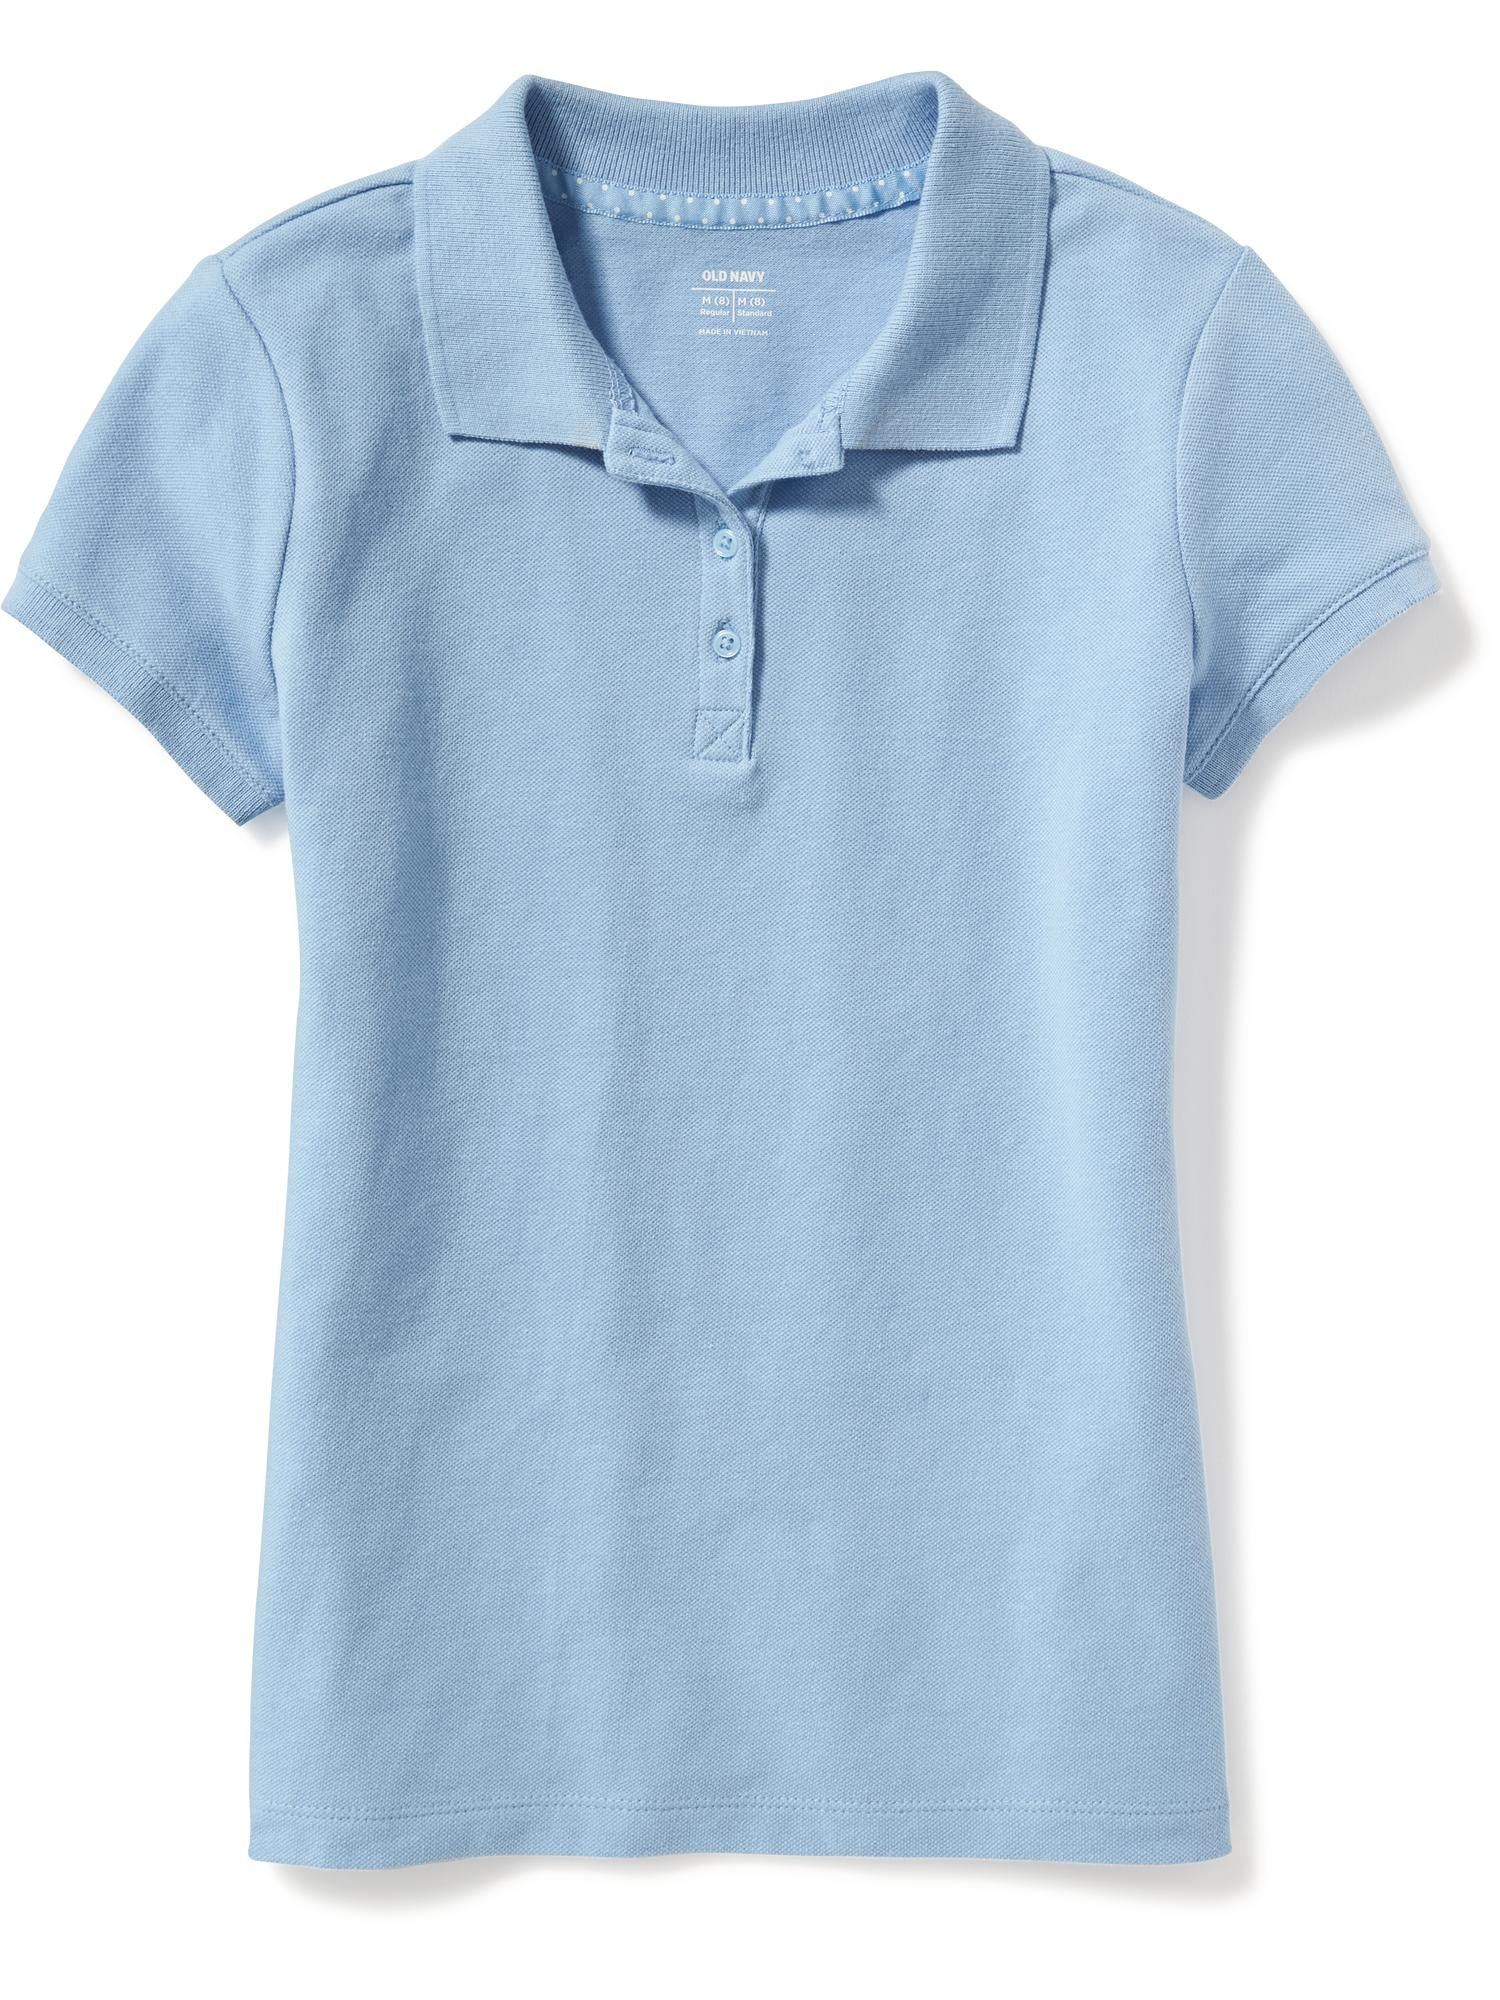 8f67a34bb Uniform Pique Polo for Girls | Old Navy